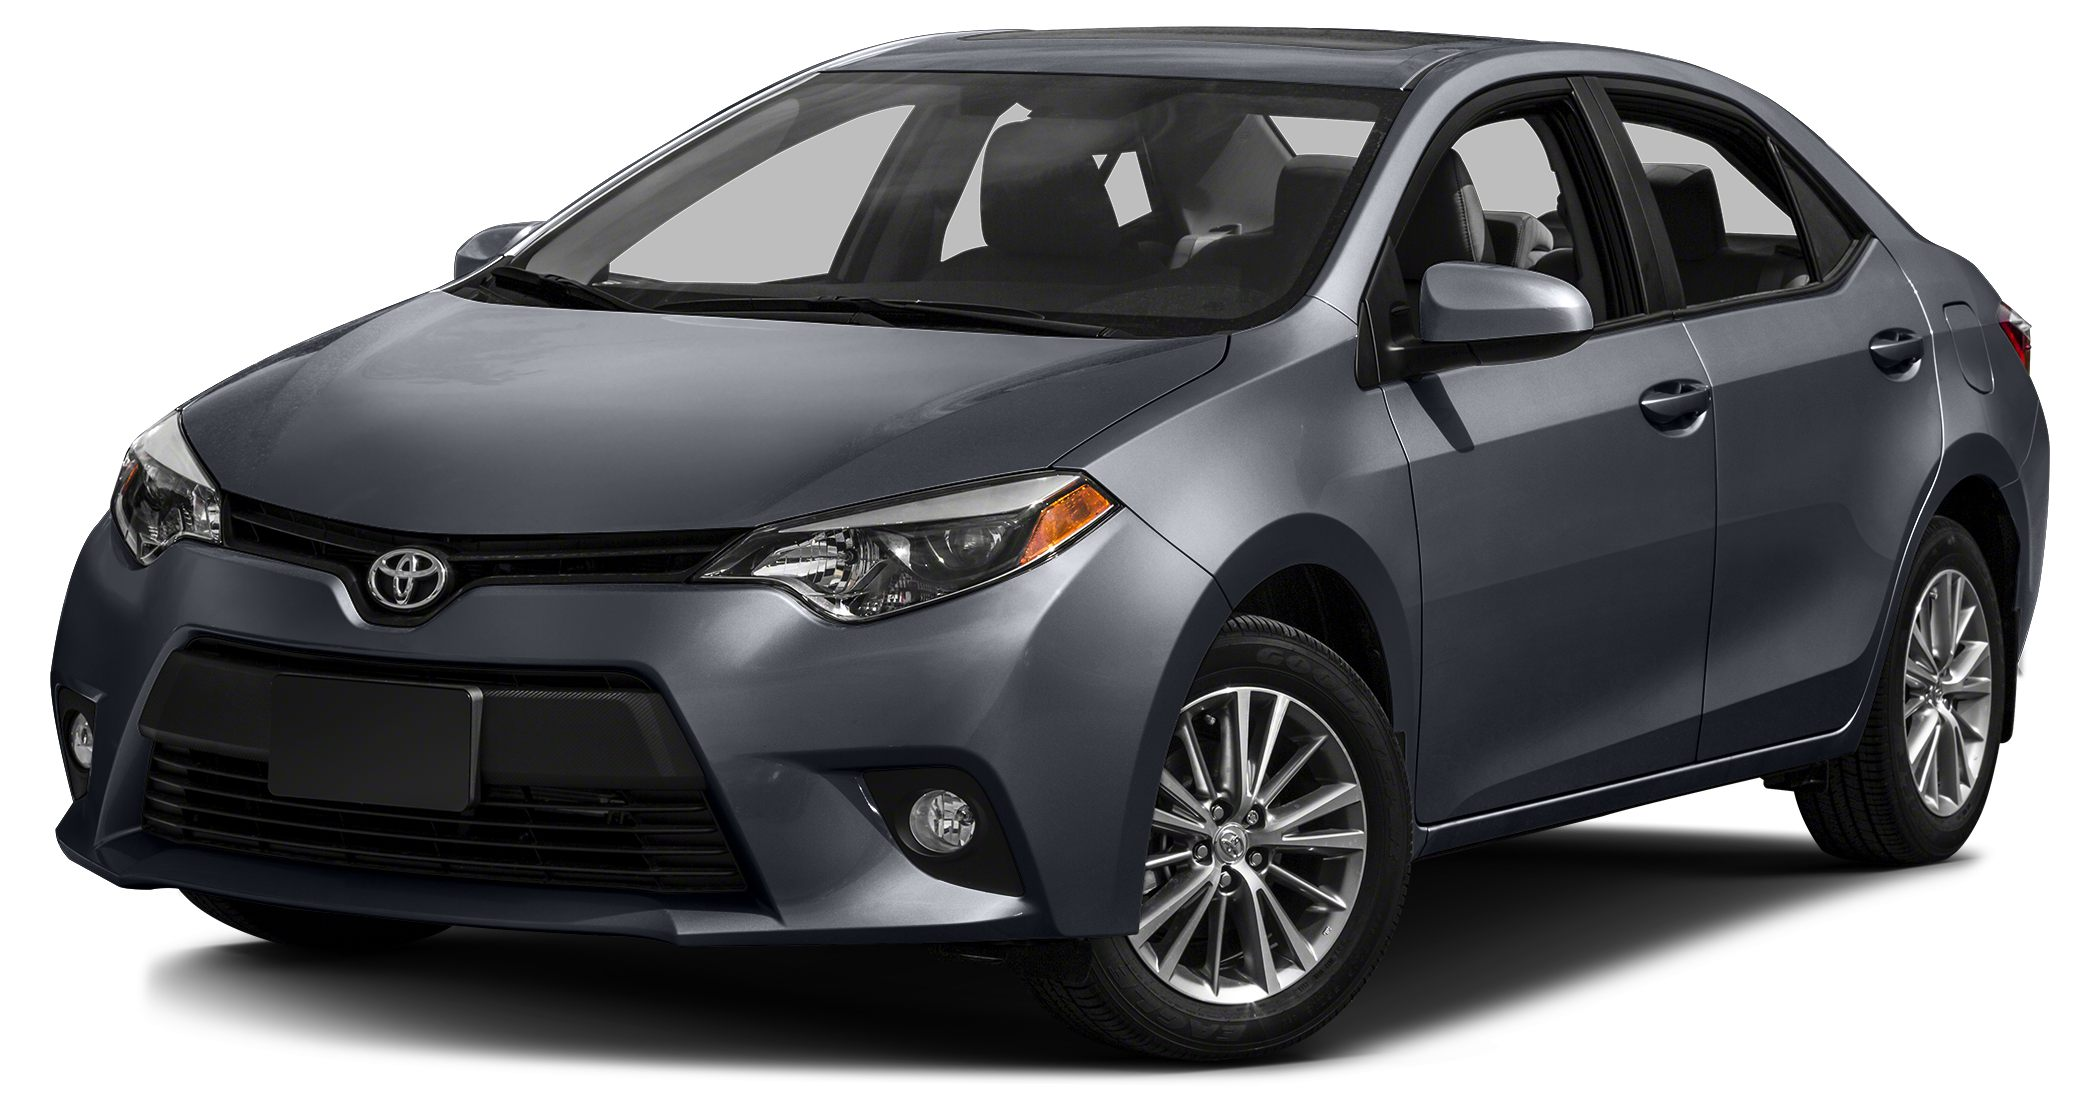 2014 Toyota Corolla LE Eco Premium Value Value 3 Year 100k miles limited Power Train Warranty wit